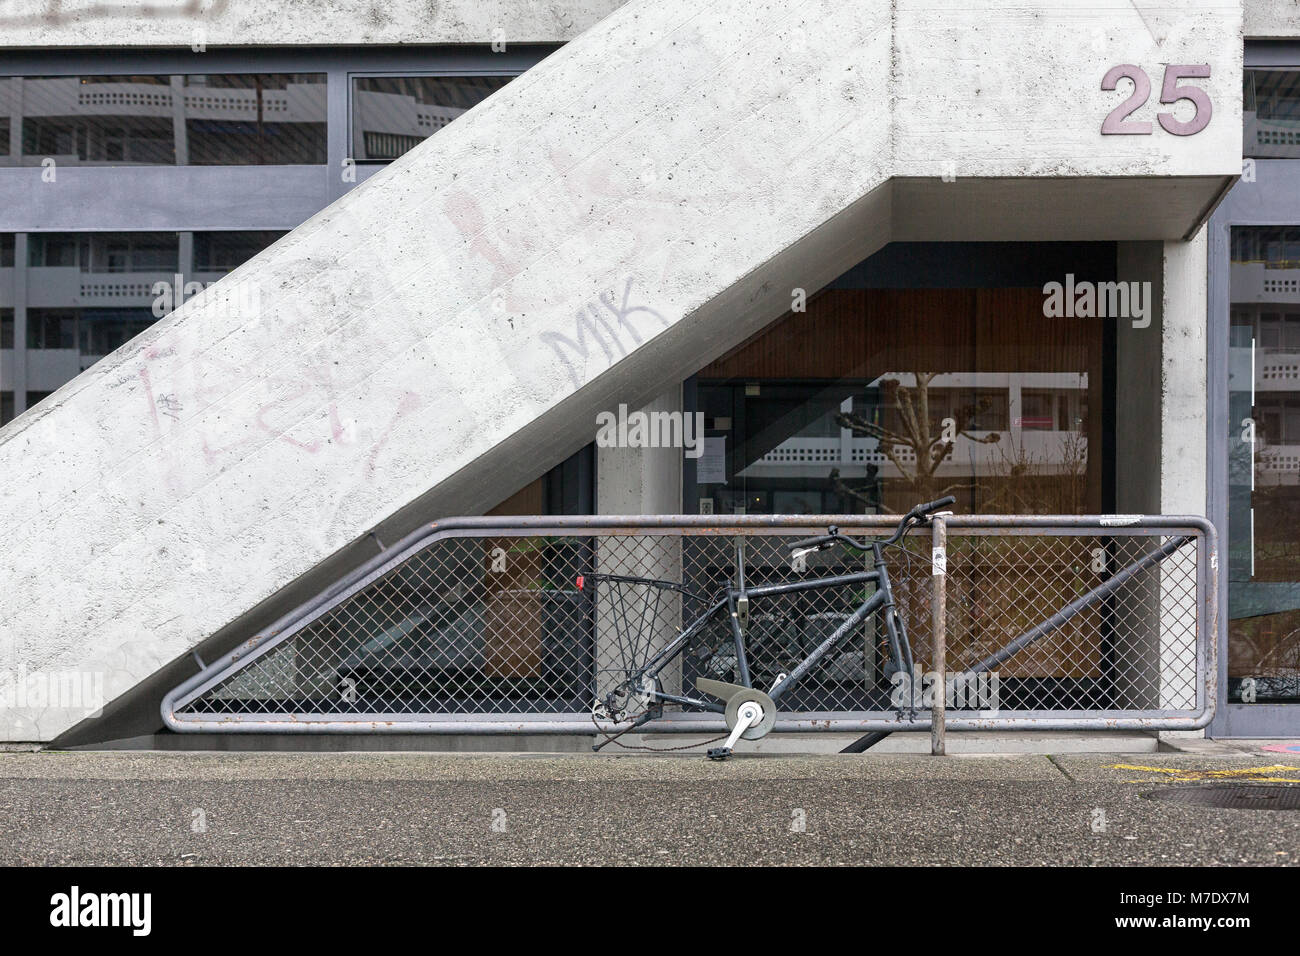 A lost or stolen bike that misses the wheels attached to a barrier of a building in town. - Stock Image